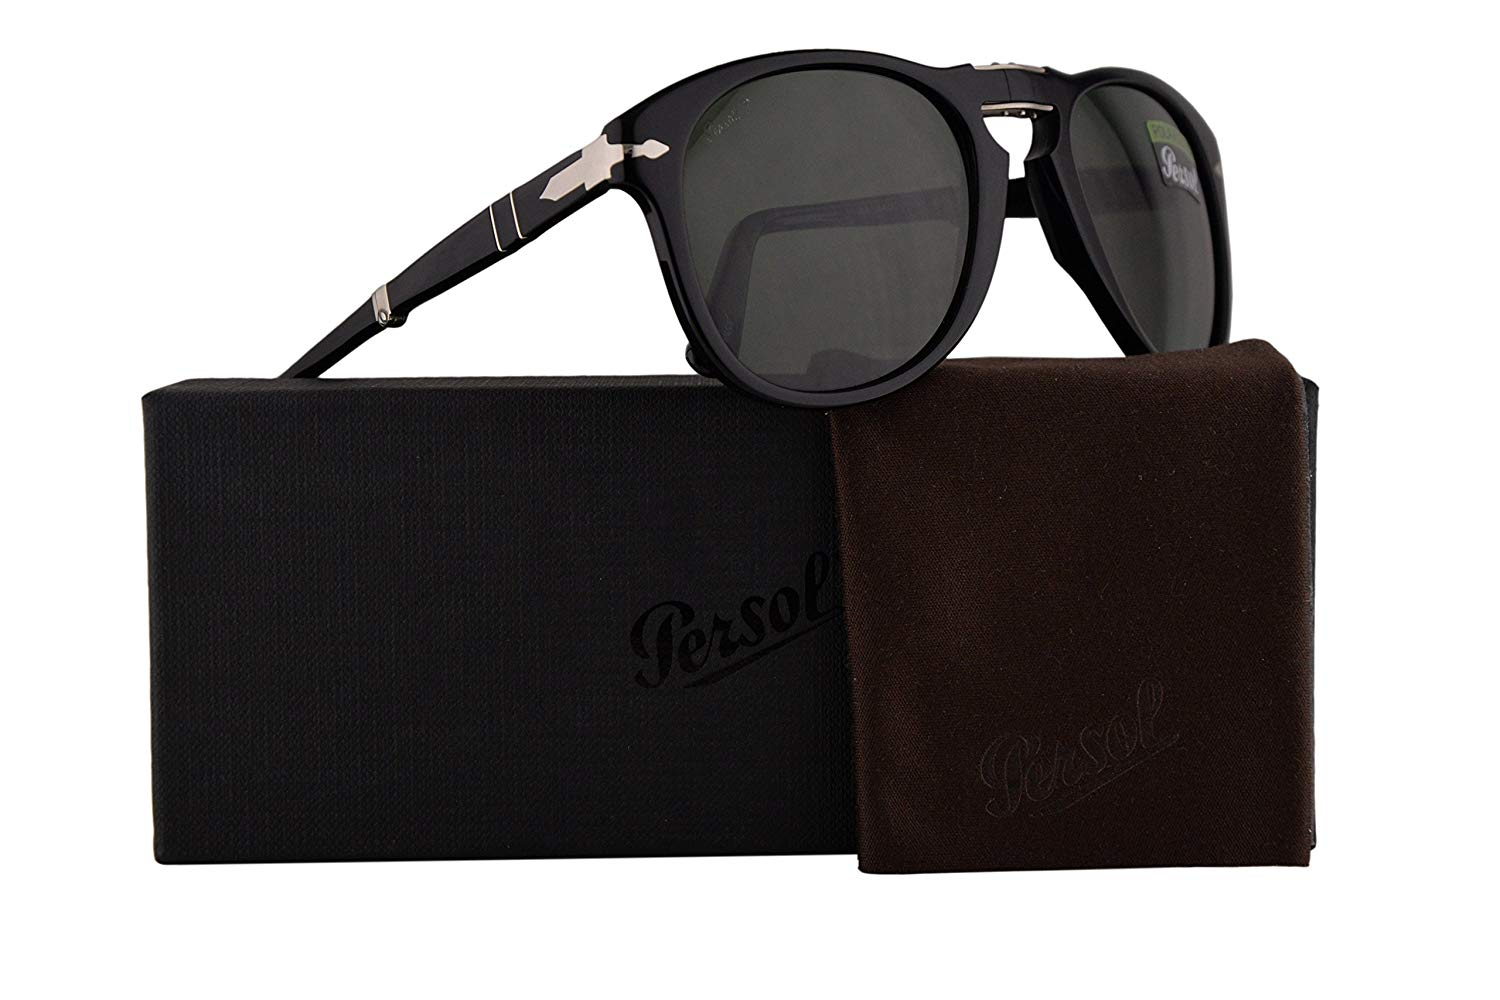 50907cd4b66a4 Get Quotations · Persol PO0714S Folding Sunglasses Black w Polarized Green  Lens 52mm 9558 PO 0714S PO0714-